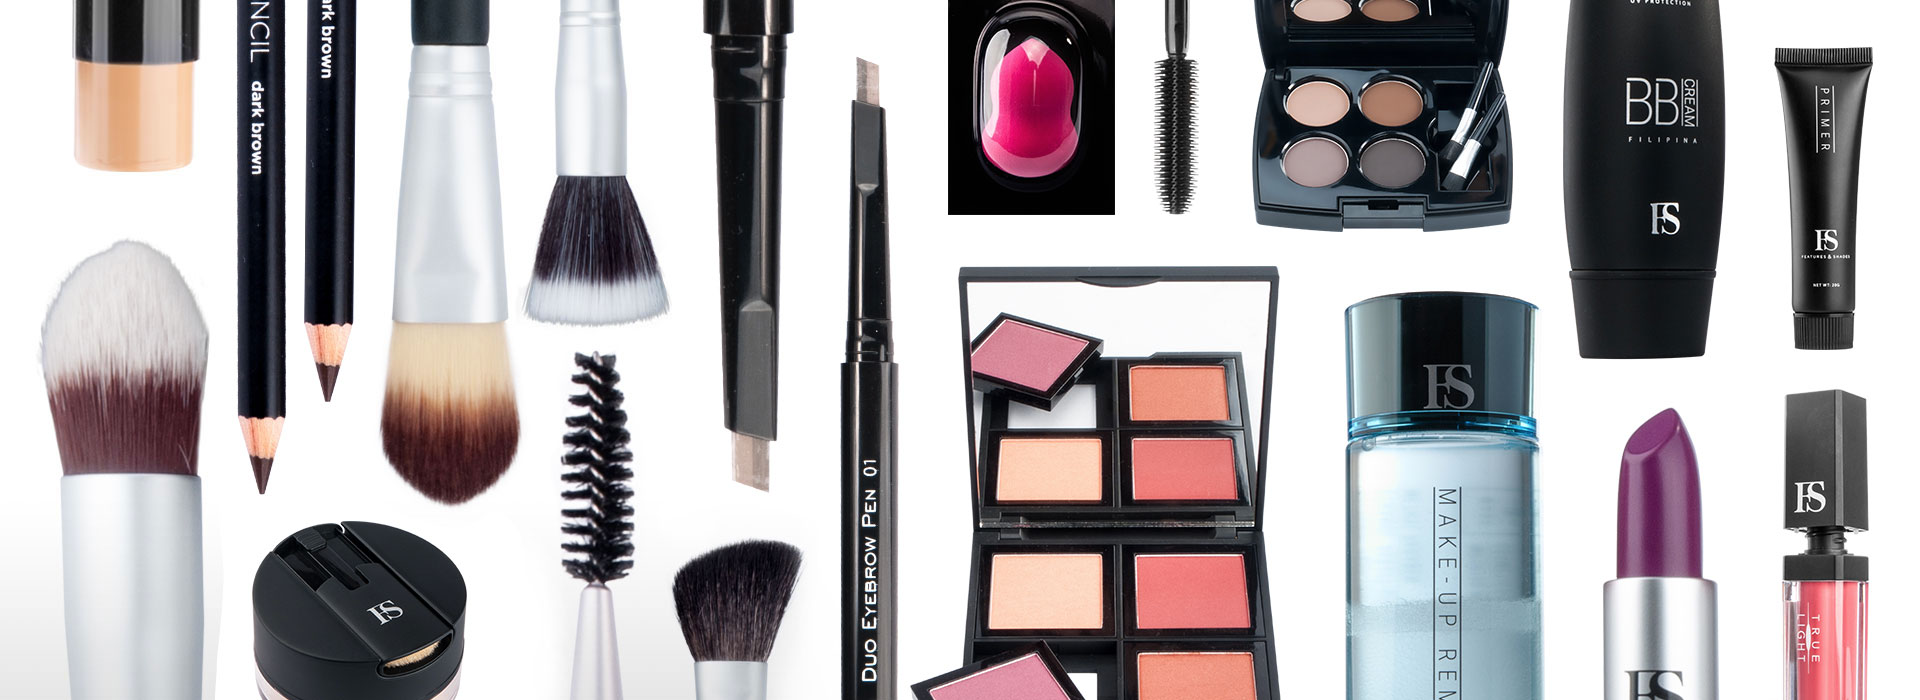 Japan-cosmetic Makeup Brushes Products - ecplaza.net